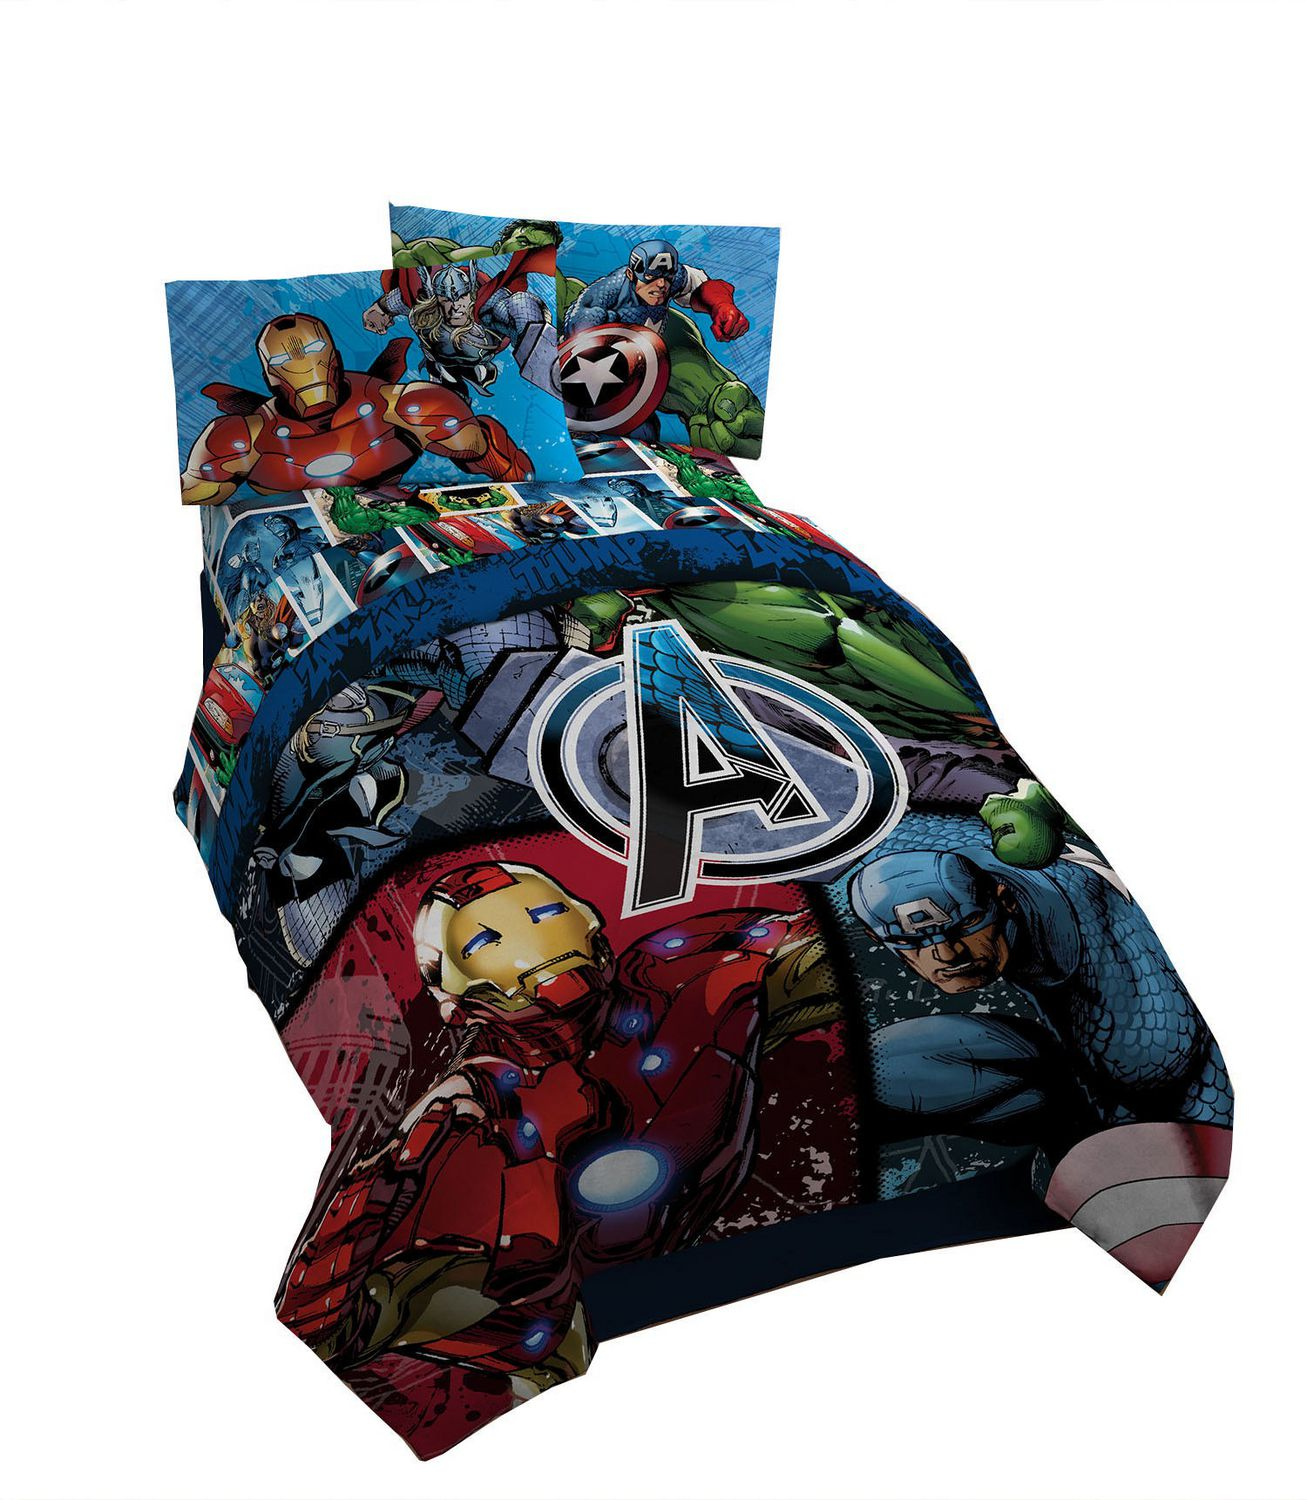 Avengers bedding set twin - Avengers Bedding Set Twin 27